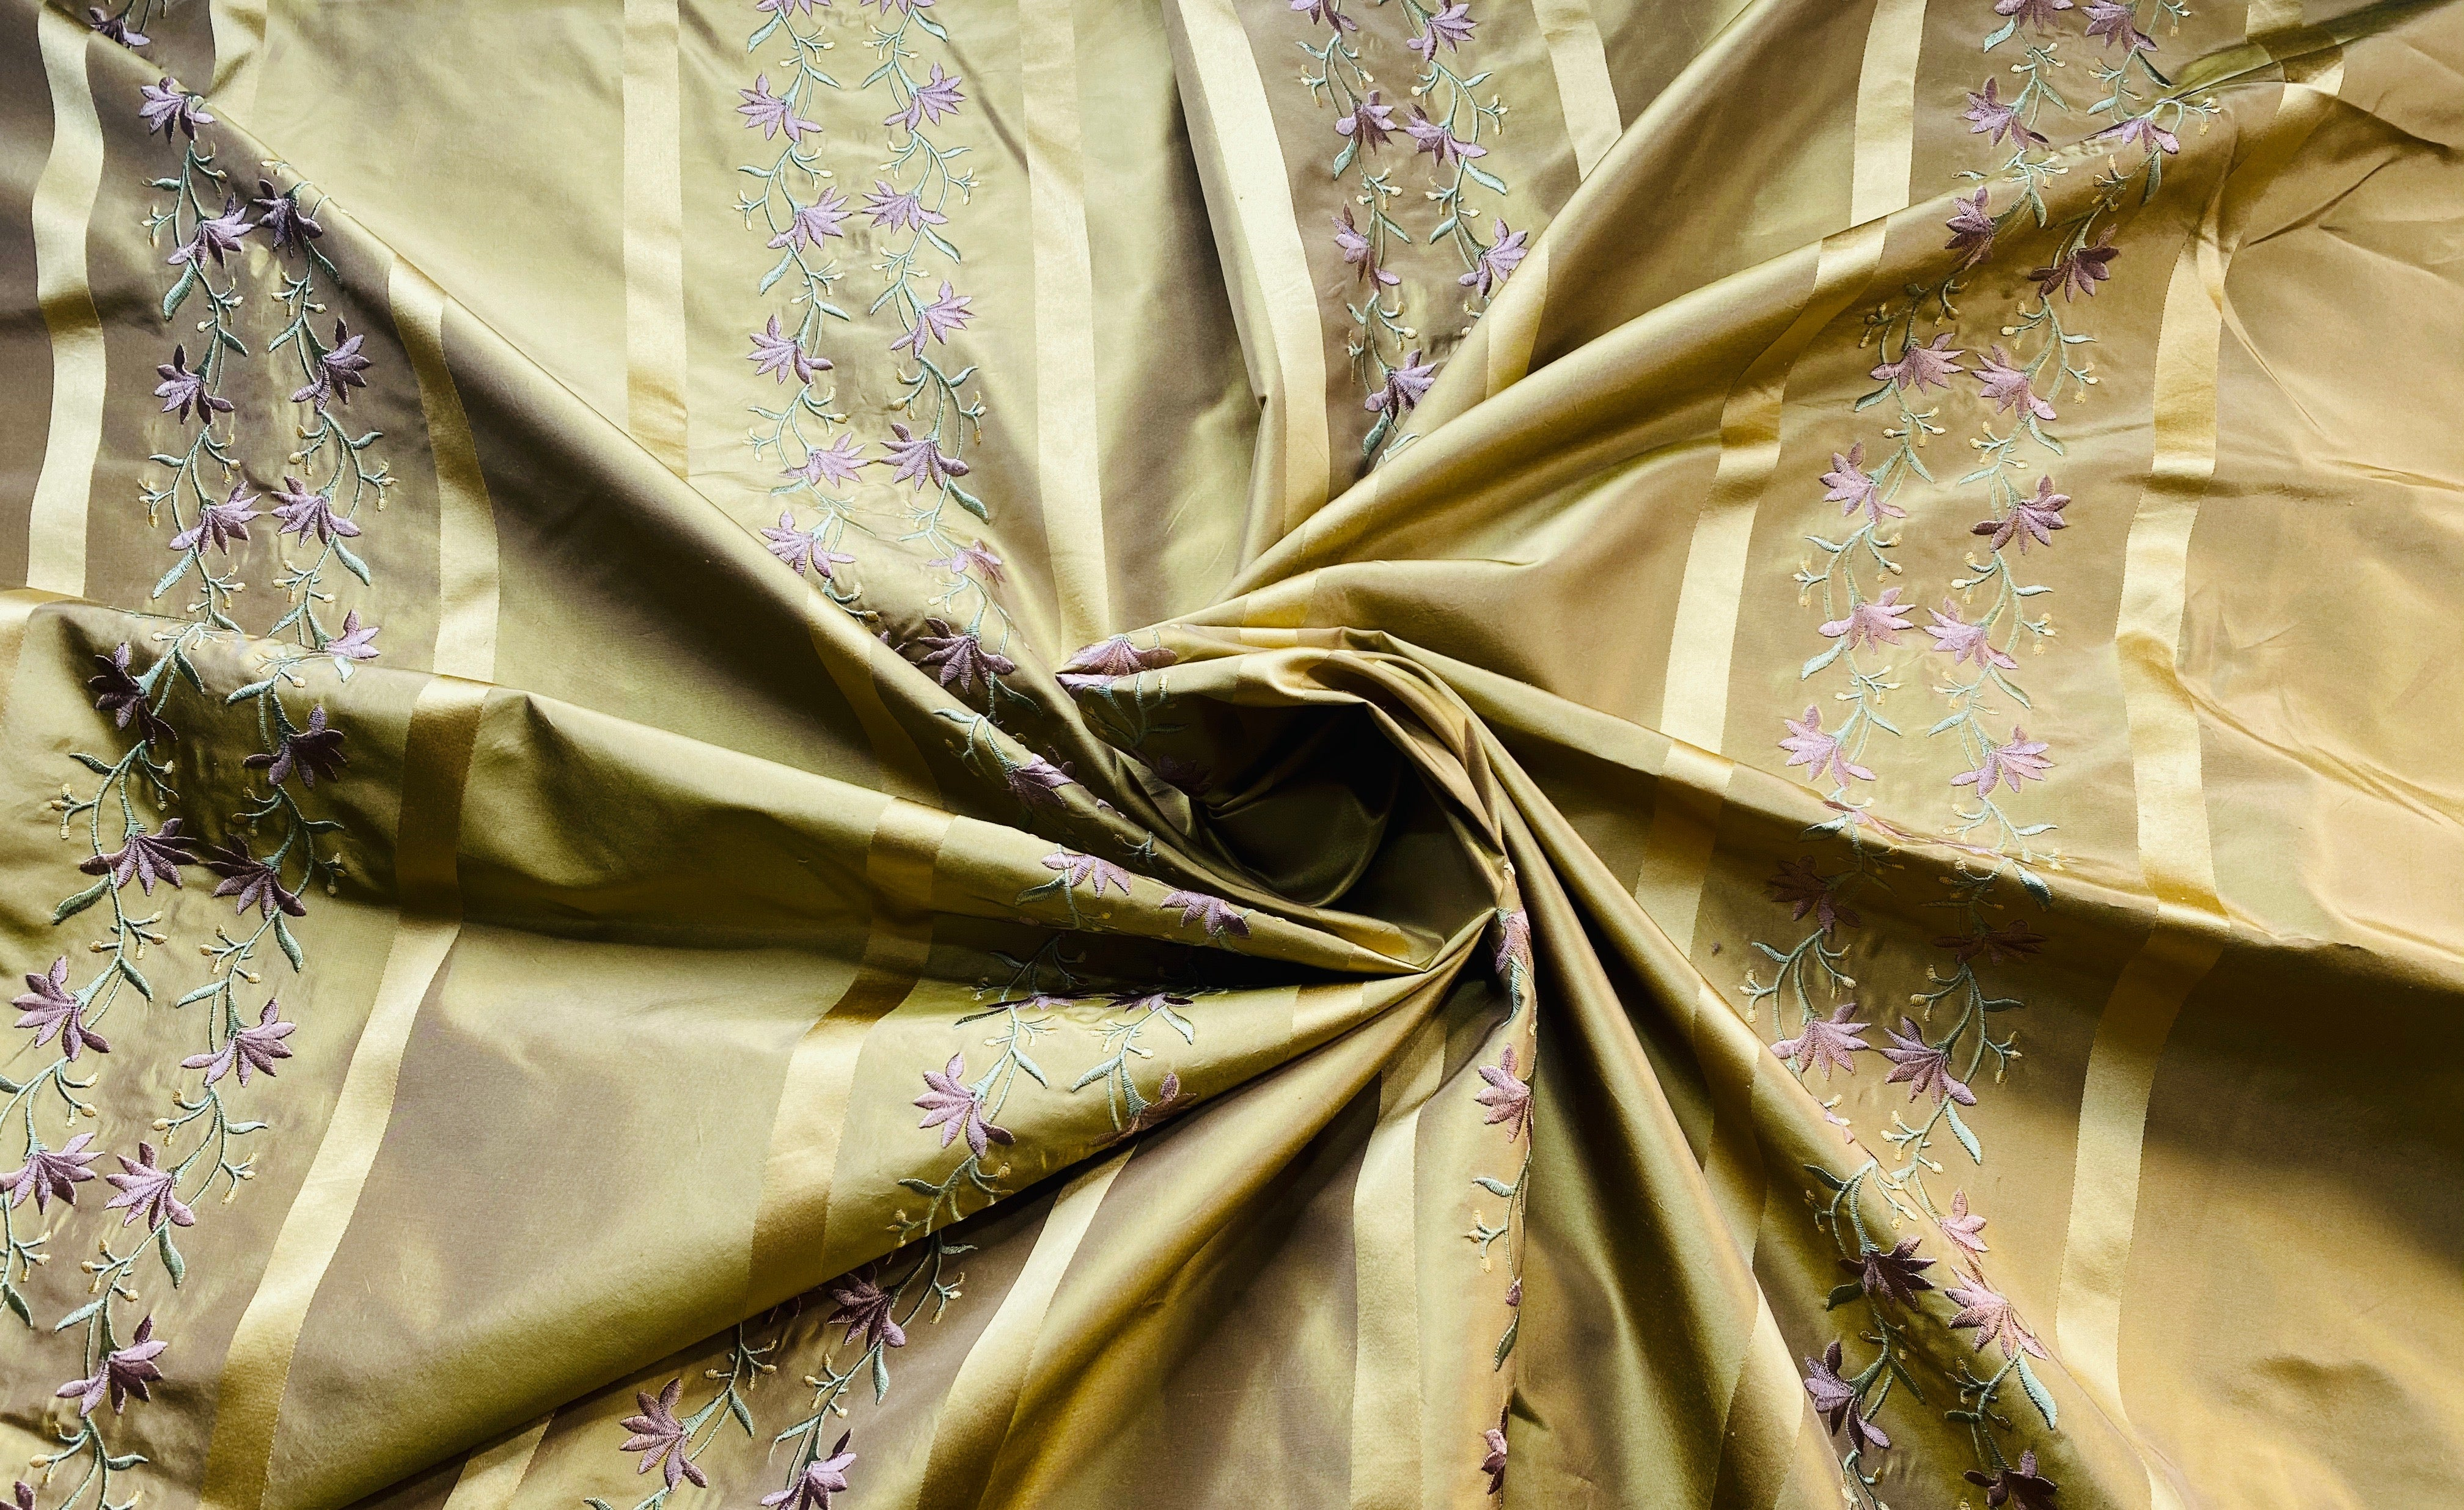 NEW Designer 100% Silk Taffeta Ribbon Stripe Embroidered Floral Fabric in Gold and Lavender